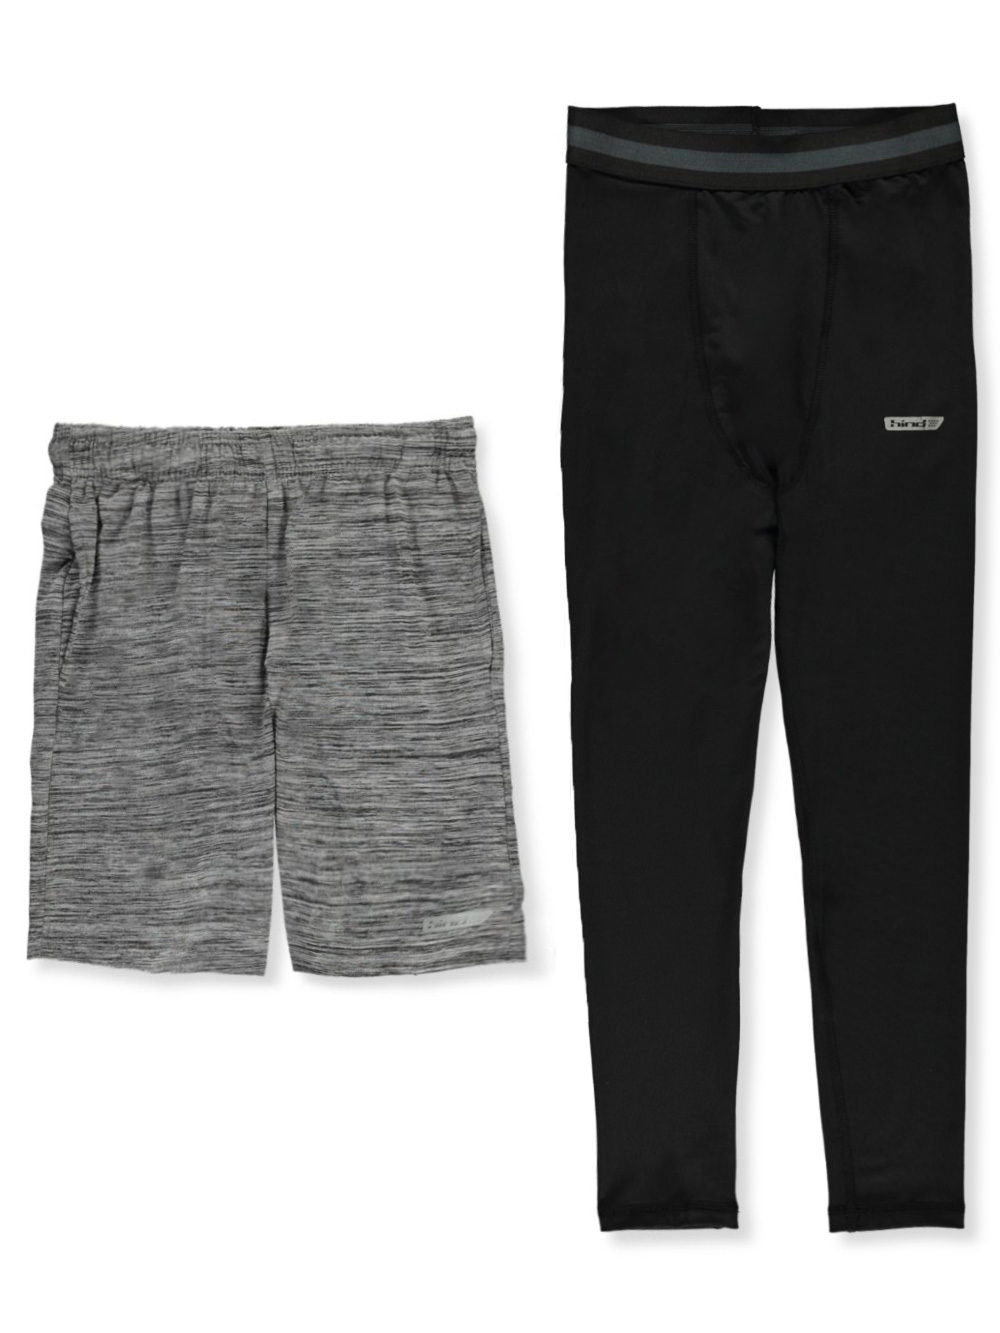 Hind Boys' 2-Pack Active Layering Set